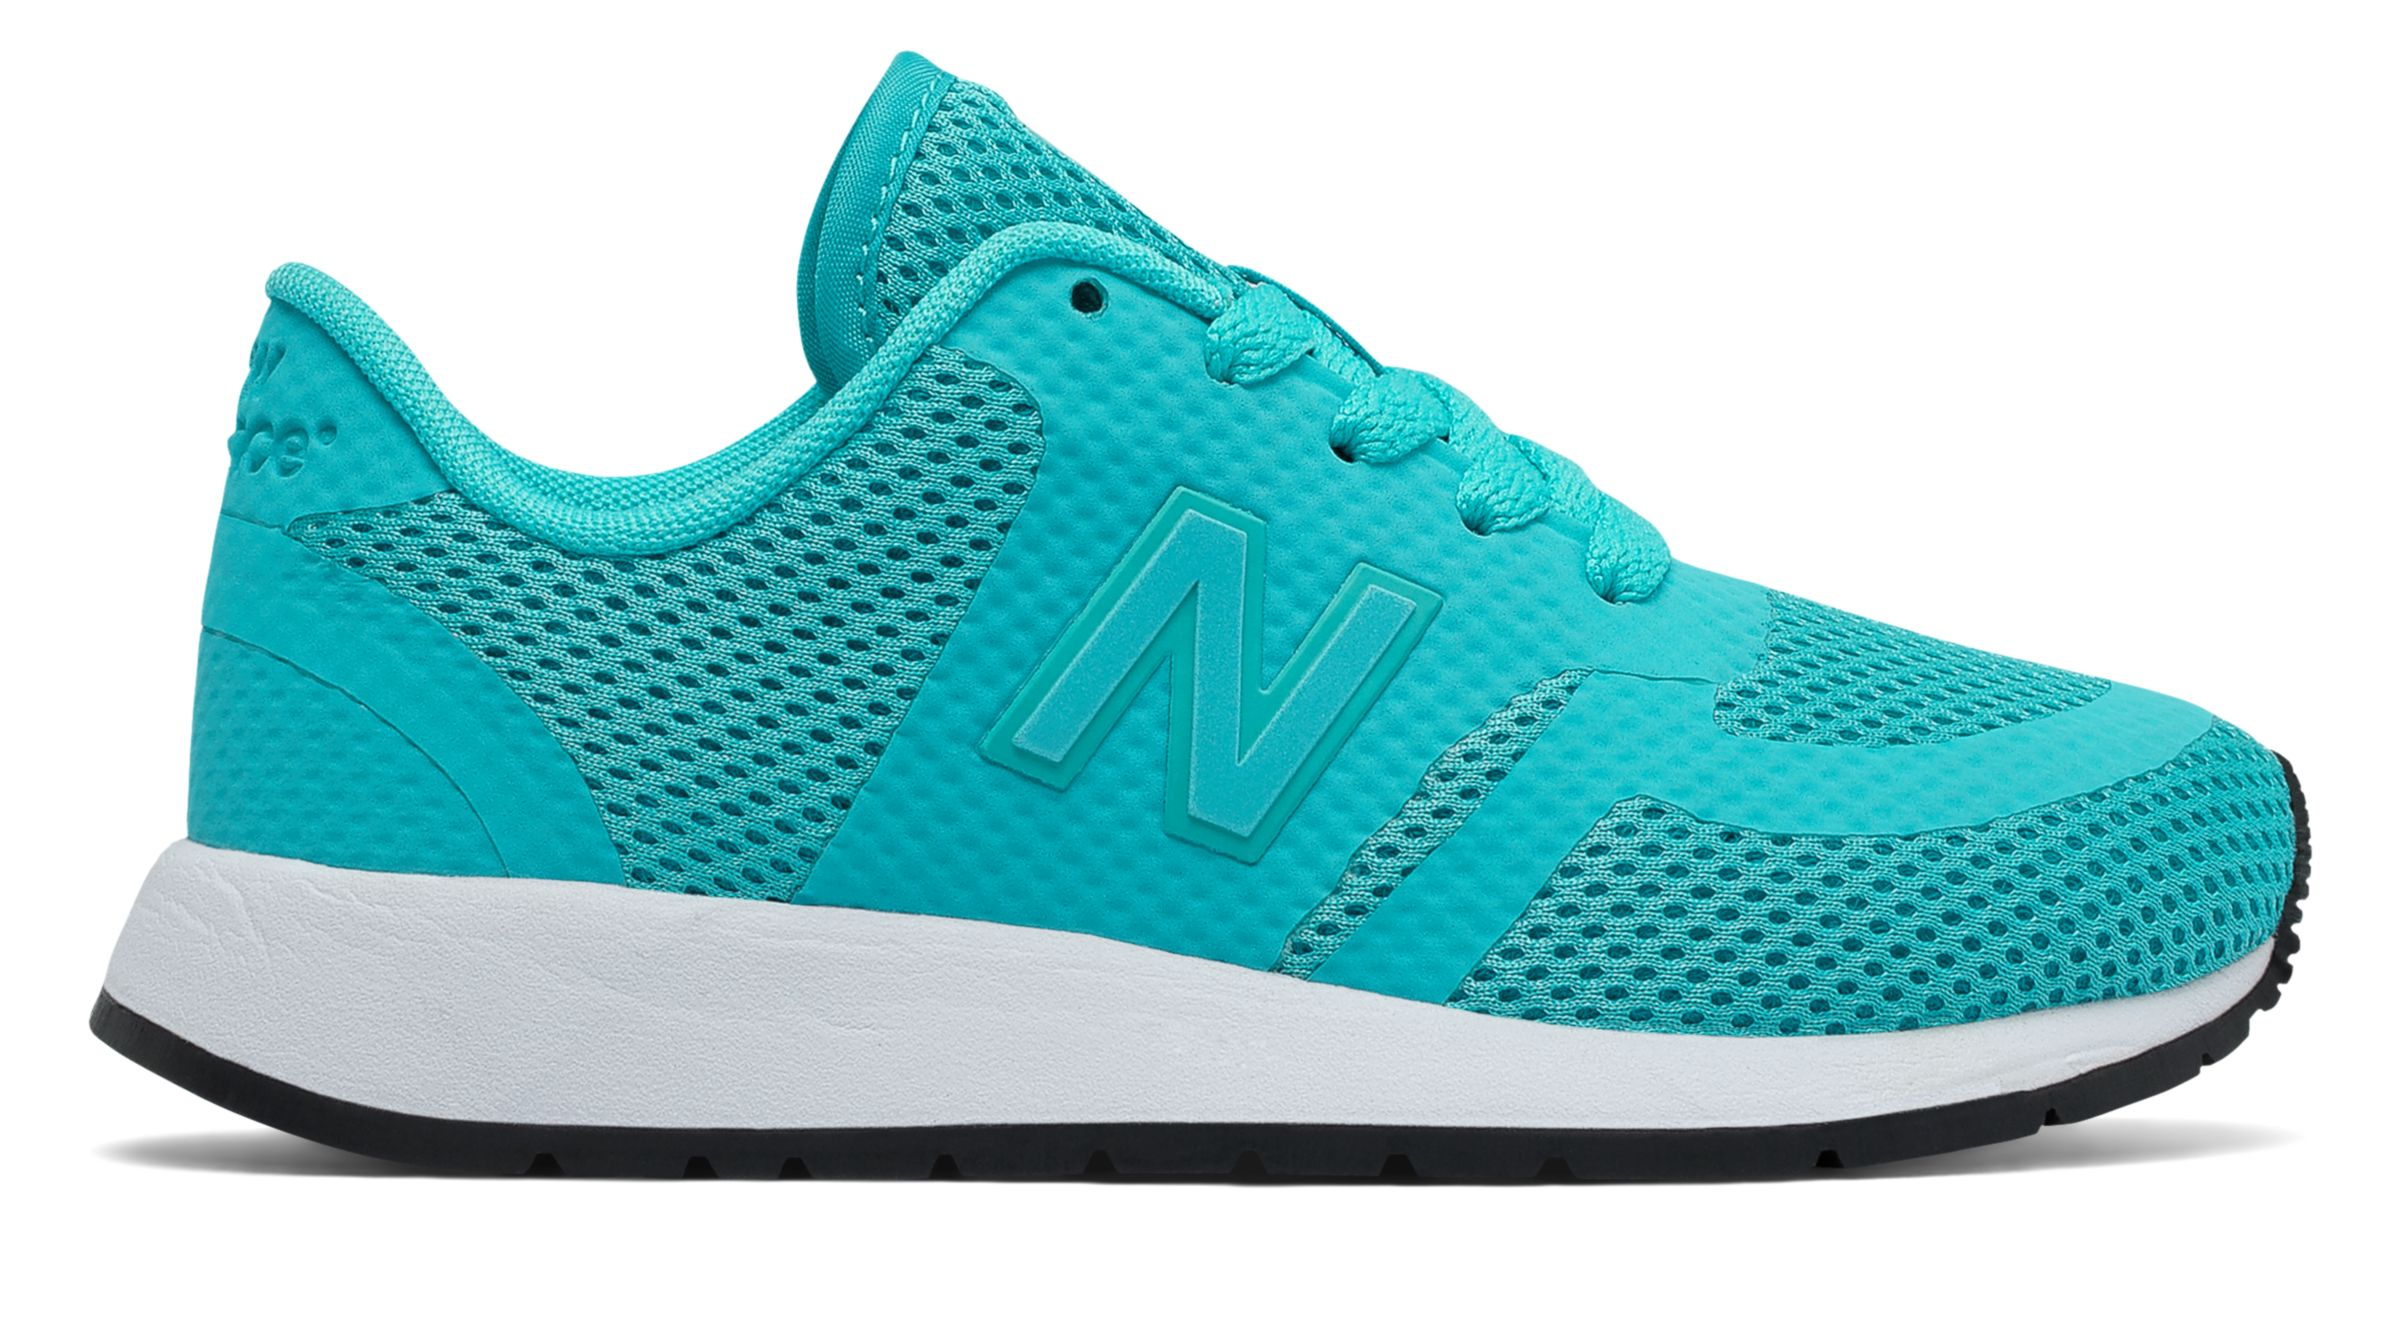 NB 420 New Balance, Teal with White